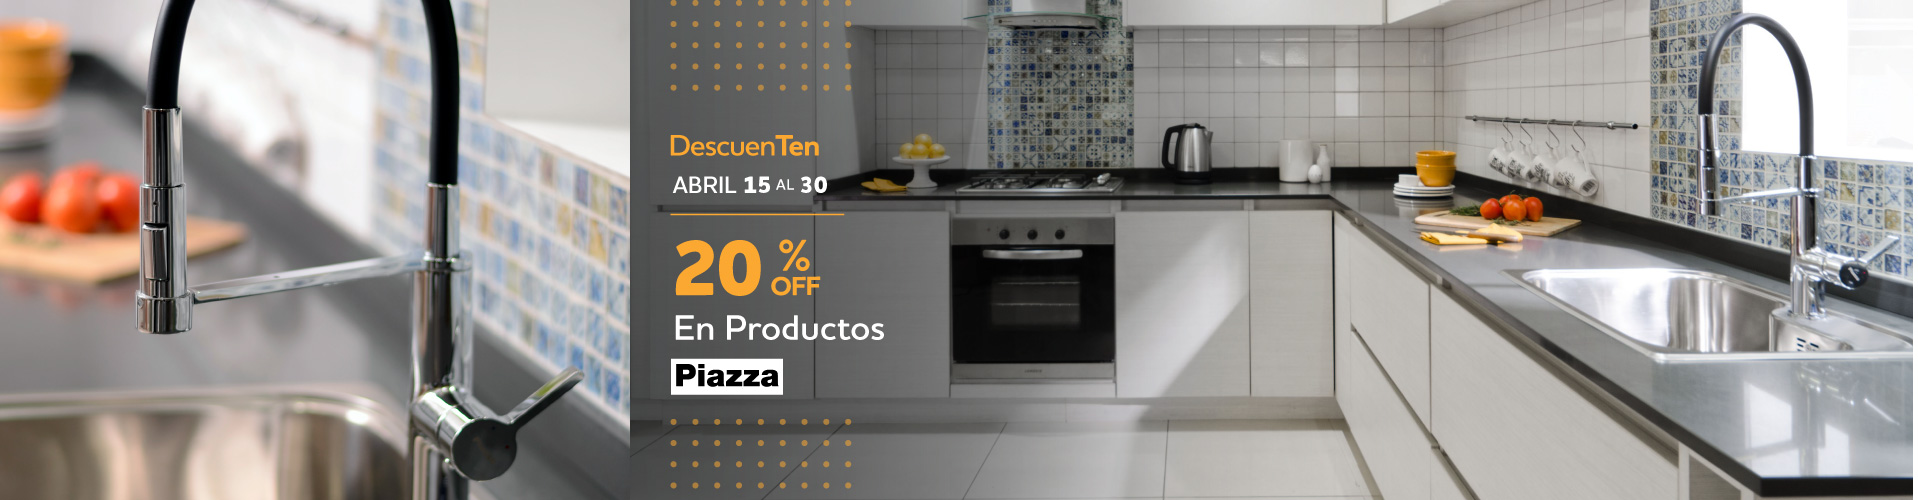 PIAZZA 20%